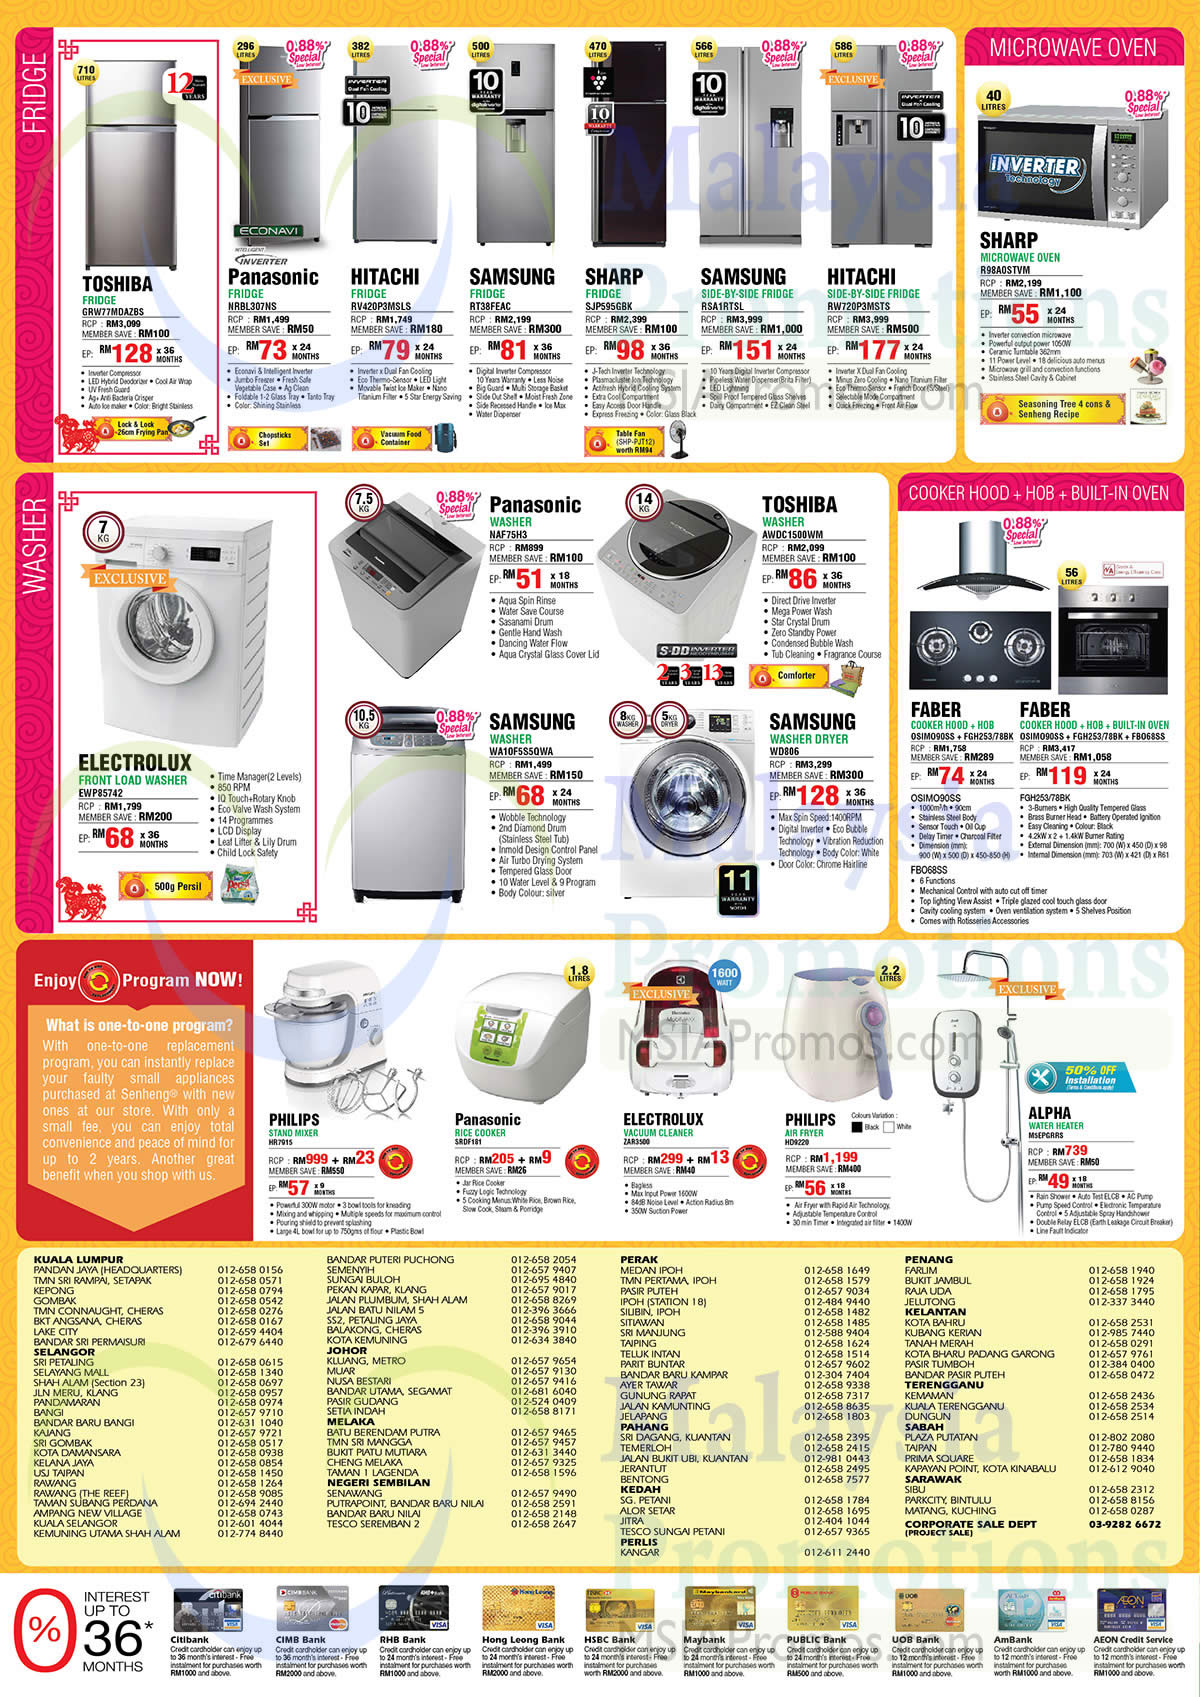 Uncategorized Faber Kitchen Appliances fridges washers ovens kitchen appliances rice cooker stand mixer vacuum cleaner water heater faber samsung hitachi sharp